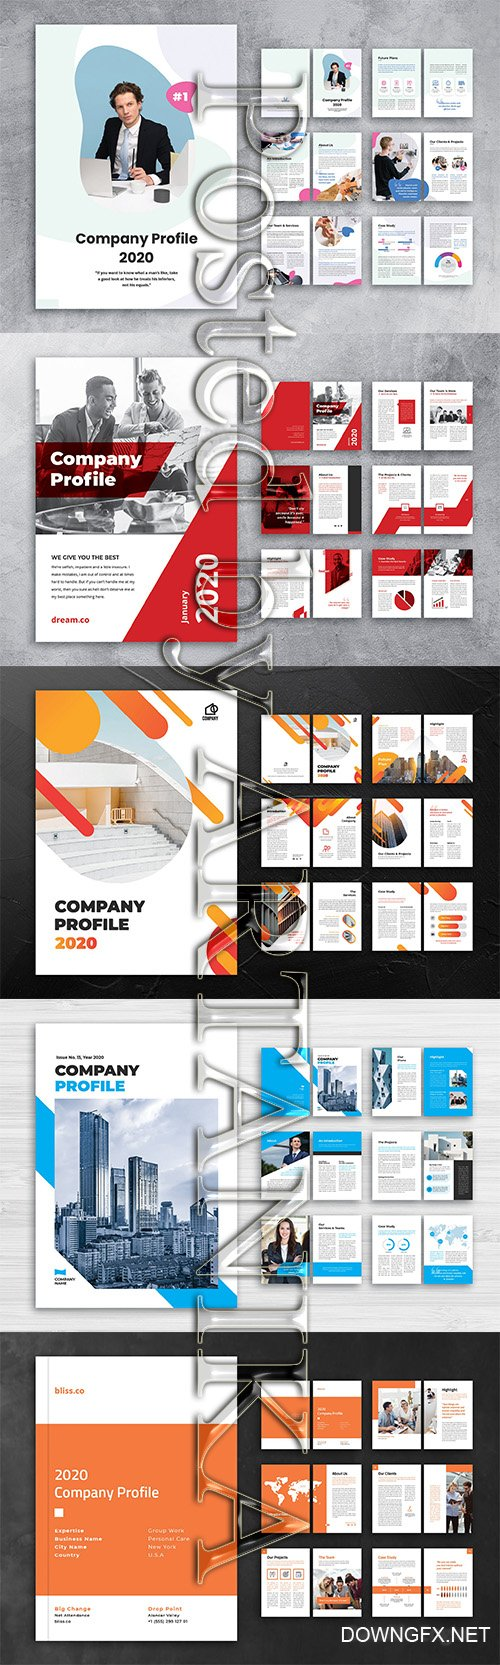 5 Company Profile Templates